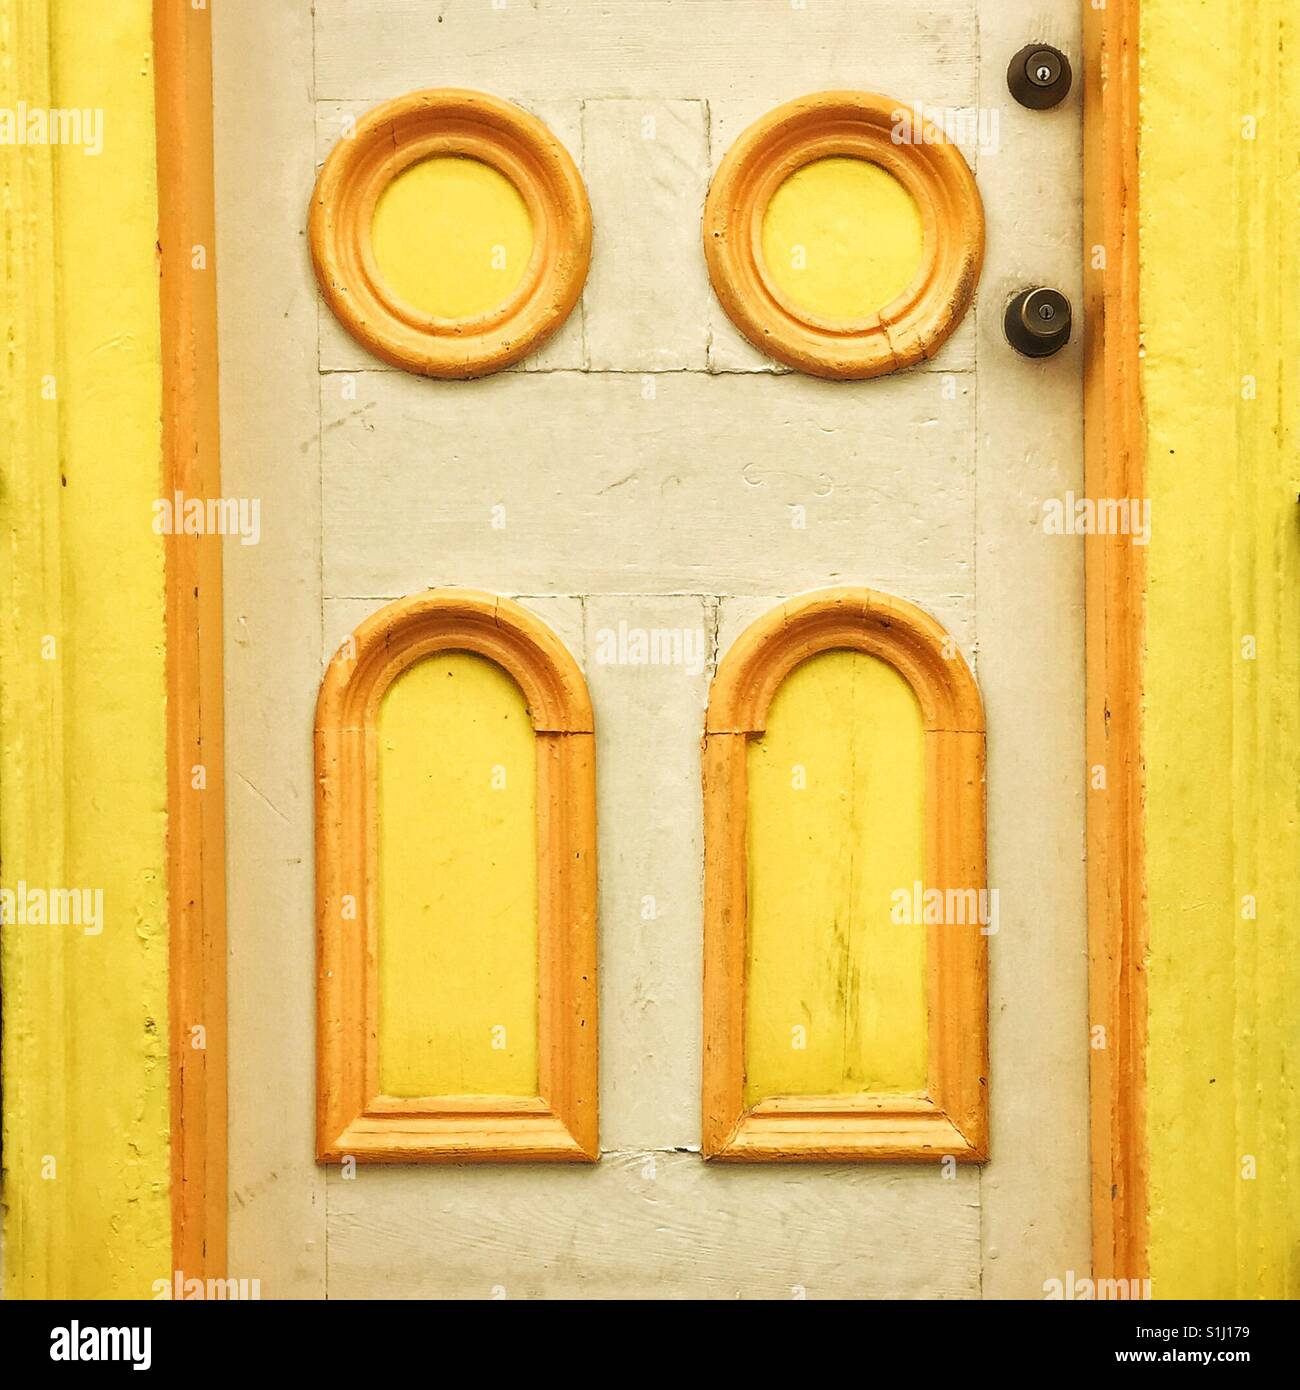 Decorative elements on the door in New Orleans painted bright yellow - Stock Image